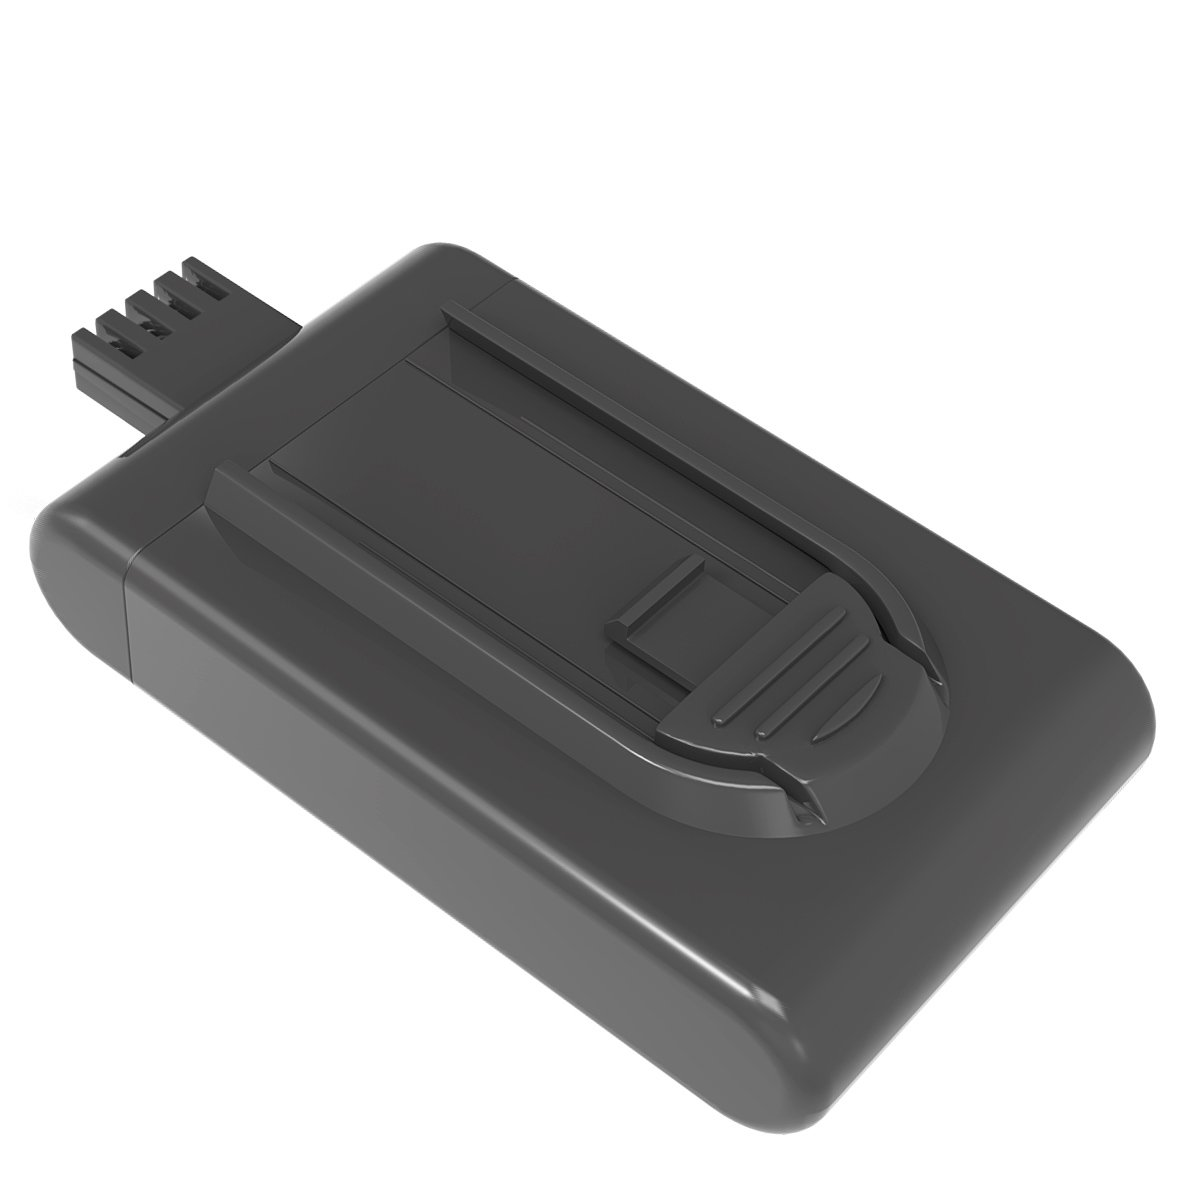 ARyee 3000mAh 21.6V Battery Replacement for Dyson DC16, DC16 Animal, DC16 Car, Root 6, Boat, ISSEY MIYAKE, Motorhead; fit Dyson 12097 912433-01 912433-03 912433-04 BP01